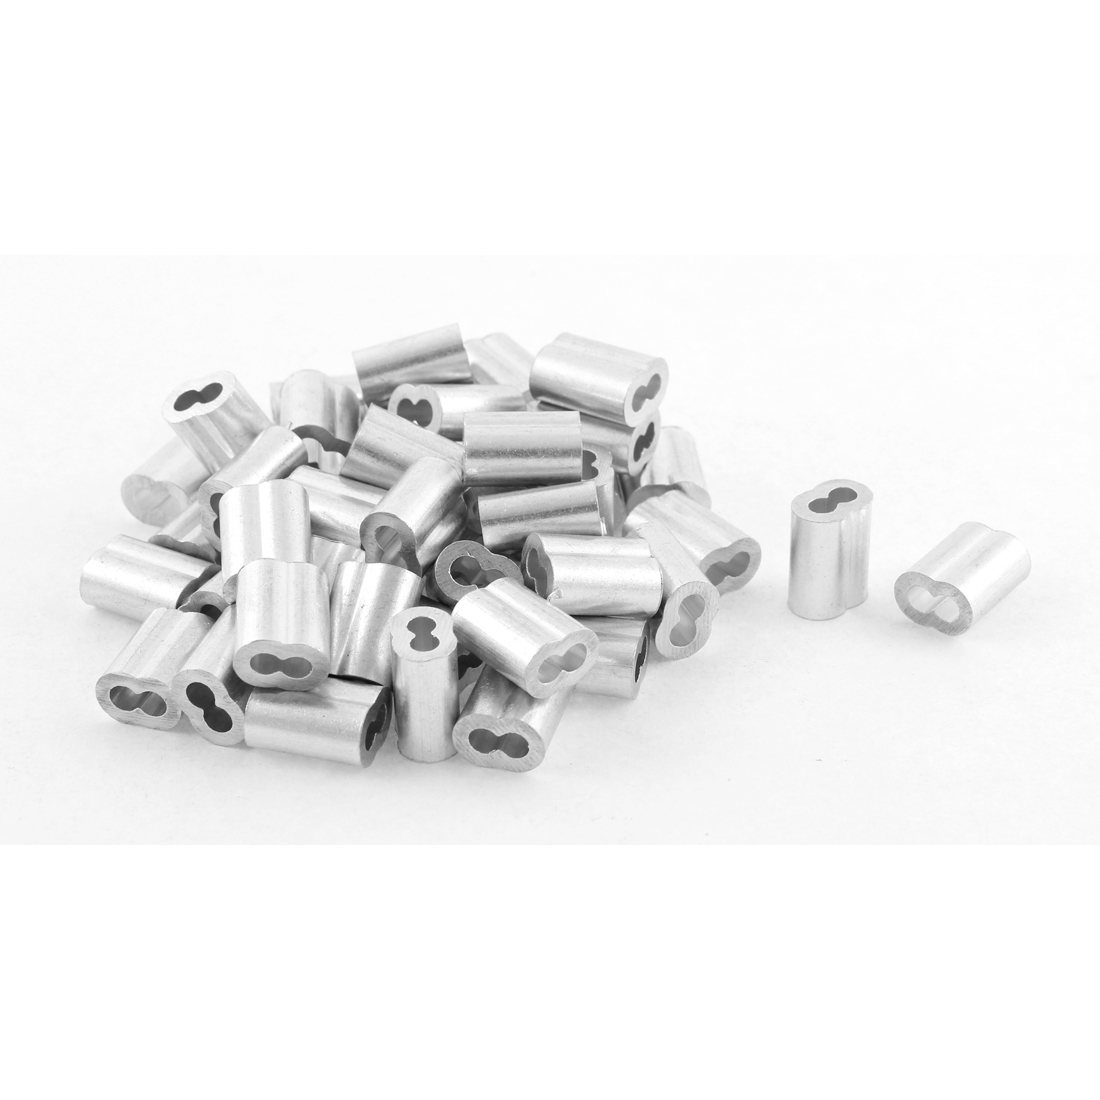 50pcs Silver Tone Aluminum Sleeve for 2.5mm Steel Wire Rope Swage Clip